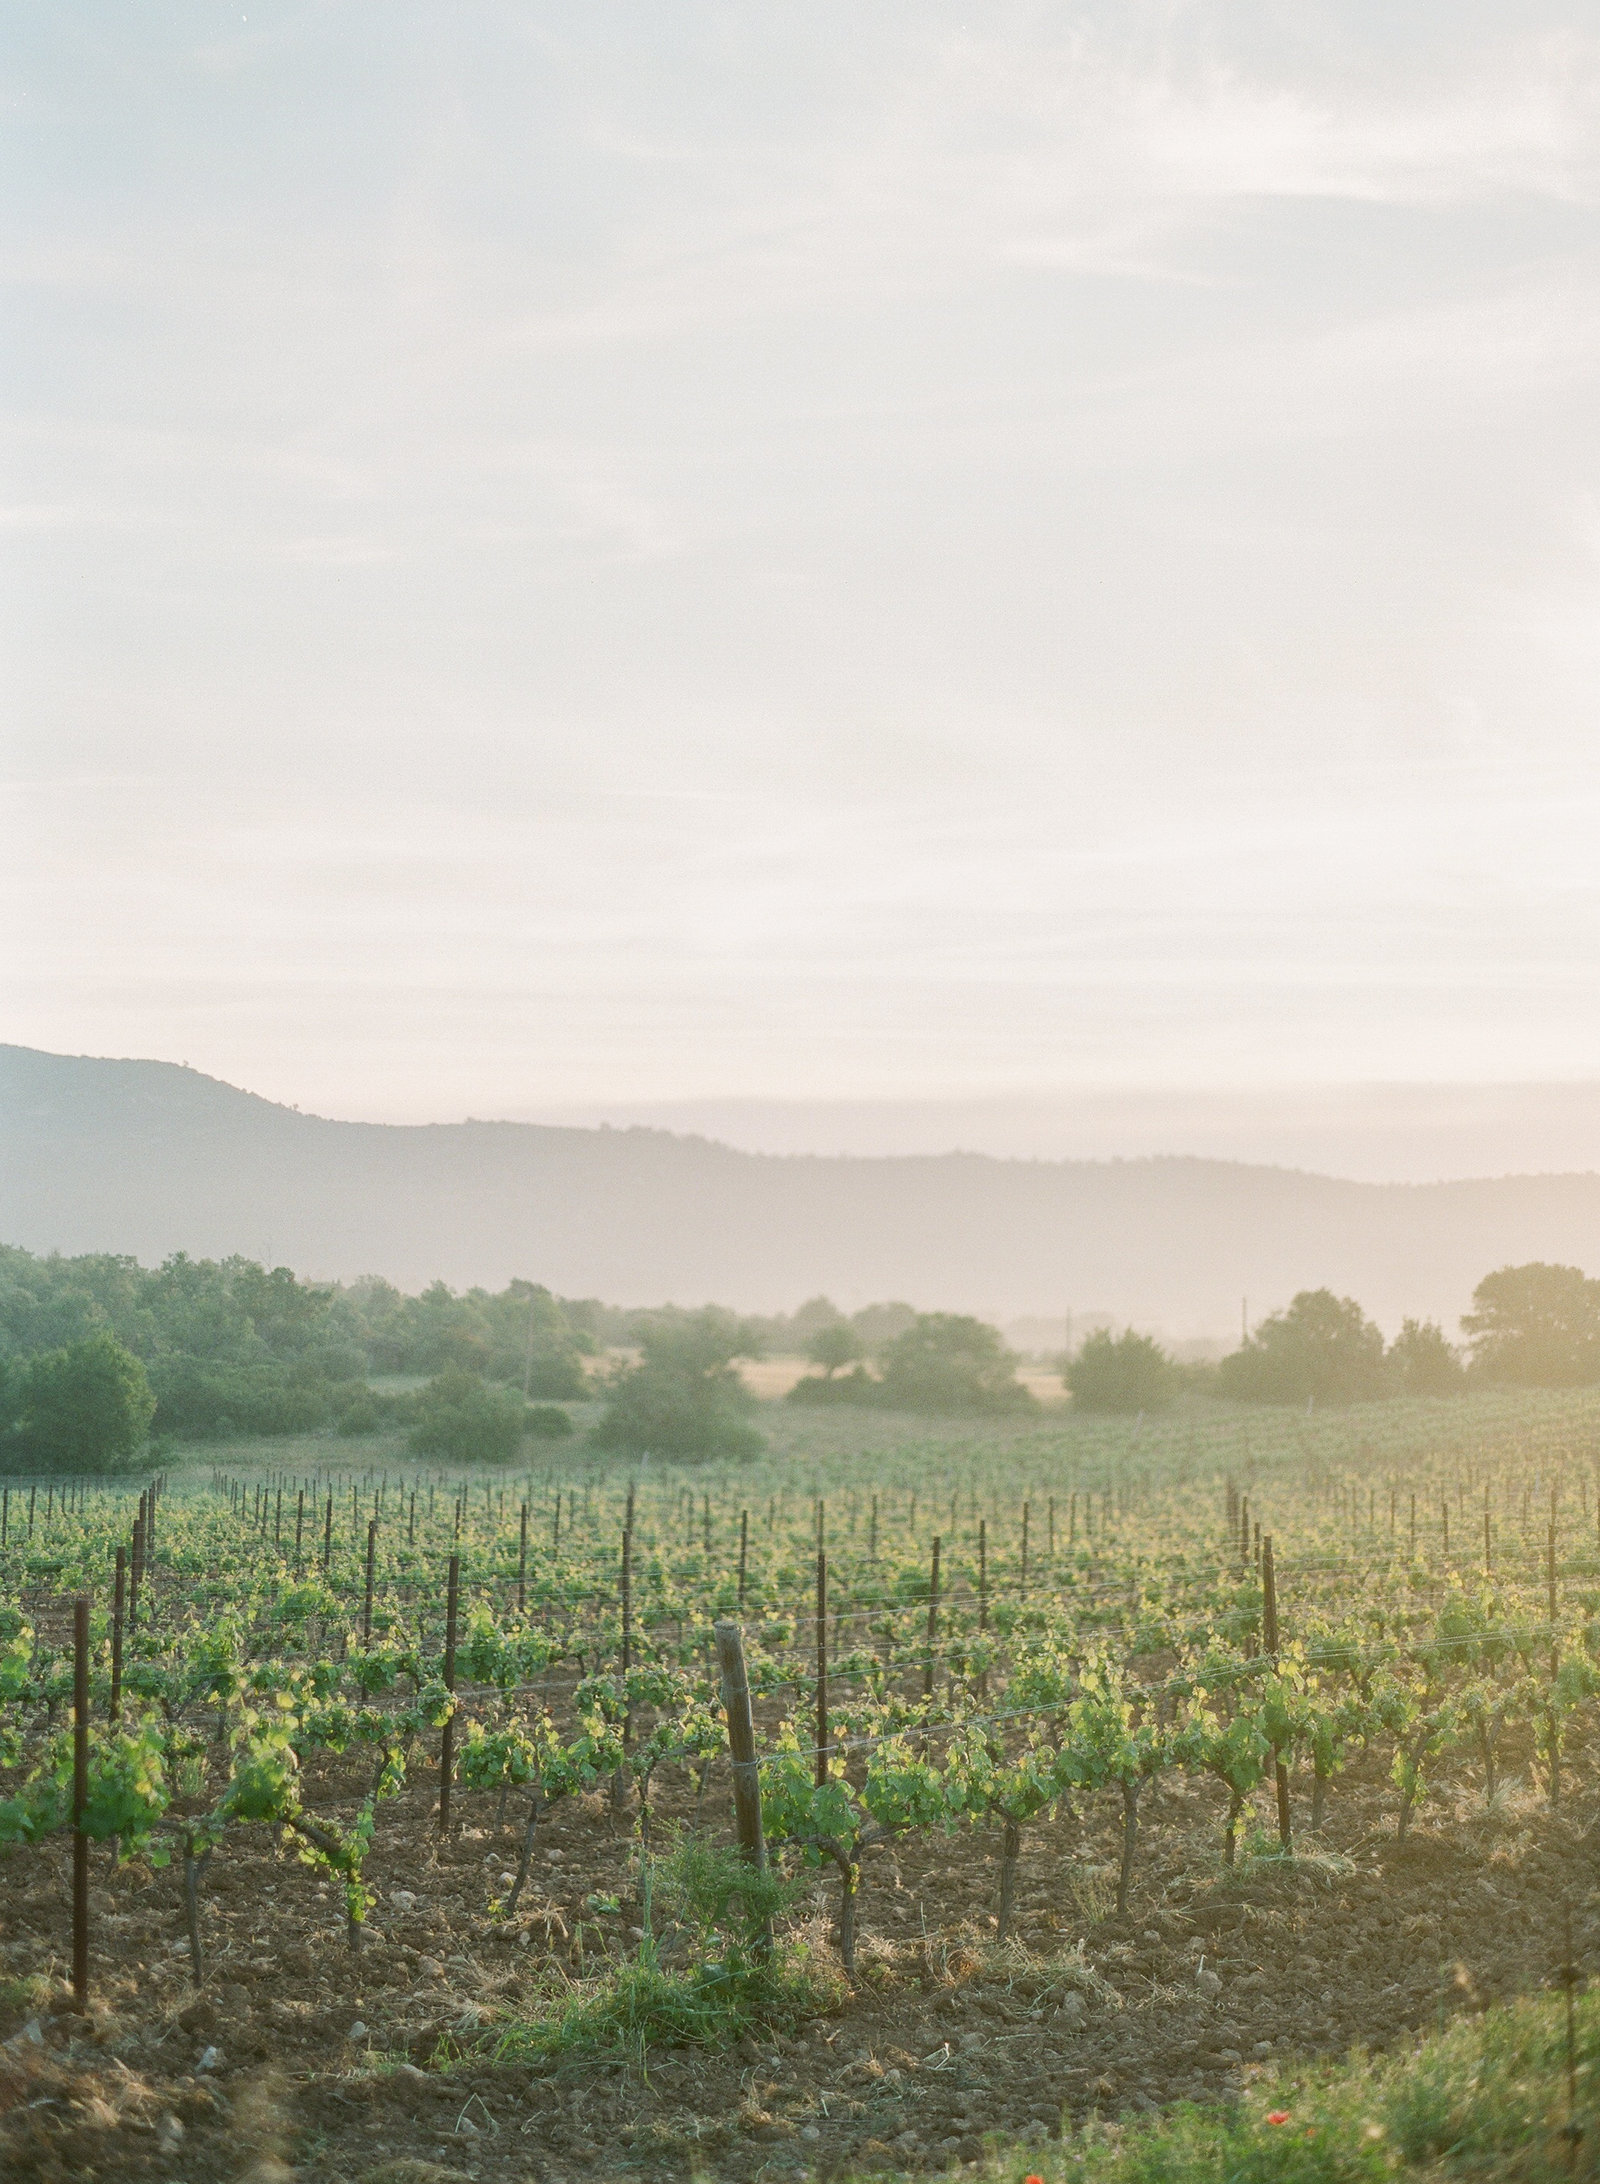 Provence vineyard. Provence sunrise. French countryside.Paris wedding photographer. Paris wedding photography. France wedding photographer. Paris destination wedding.